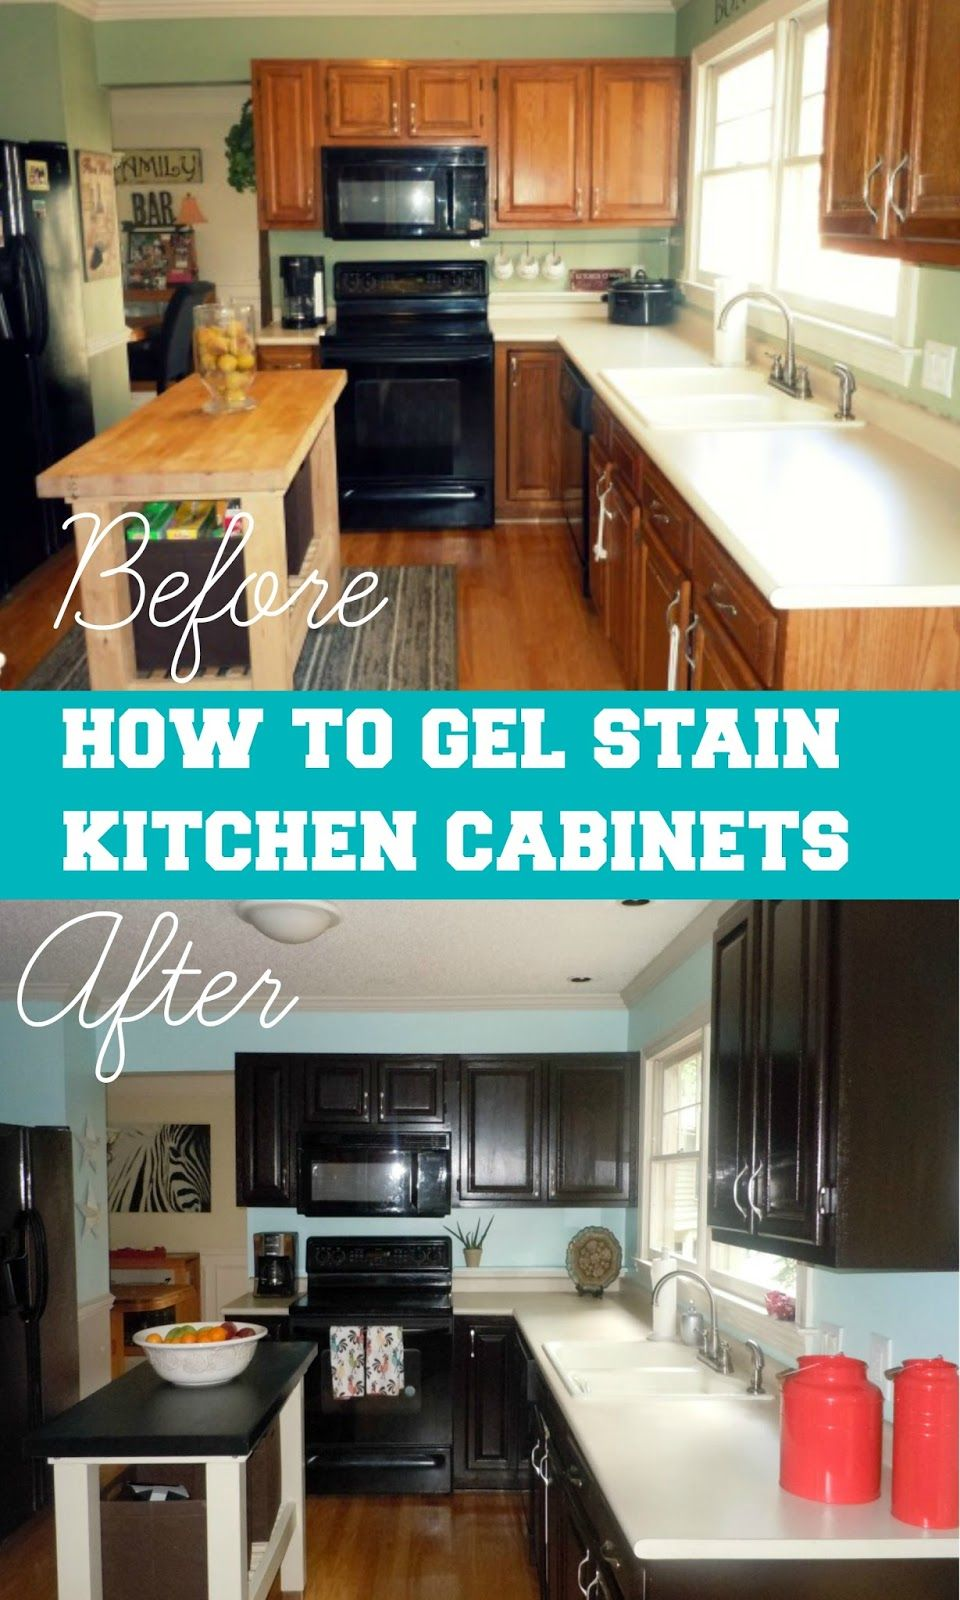 gel stain kitchen cabinets. Confessions of a Semi Domesticated Mama  How To Gel Stain Your Kitchen Cabinets